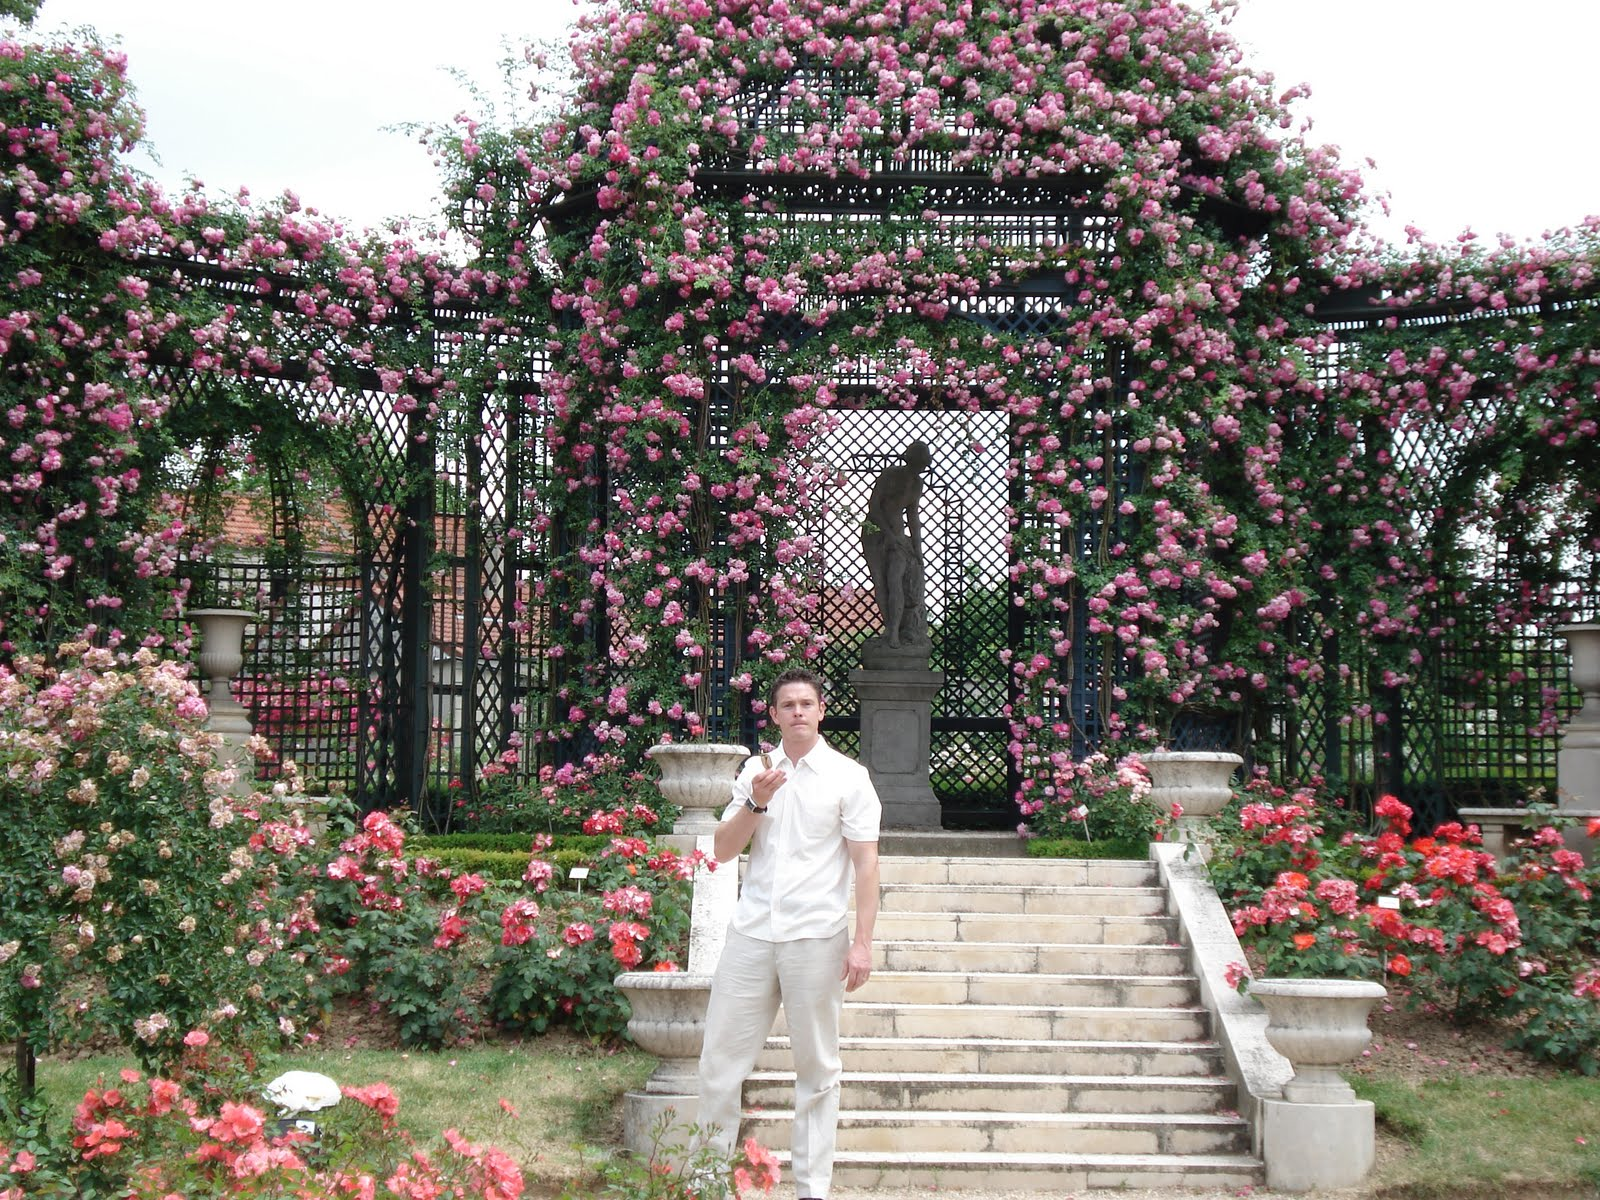 Most beautiful rose gardens in the world - Tags Worlds Most Beautiful Rose Gardens Garden No 3 The Gardens Of The Rose Worlds Most Beautiful Rose Gardens Garden No 1 Mottisfont Rose Gardens The Most